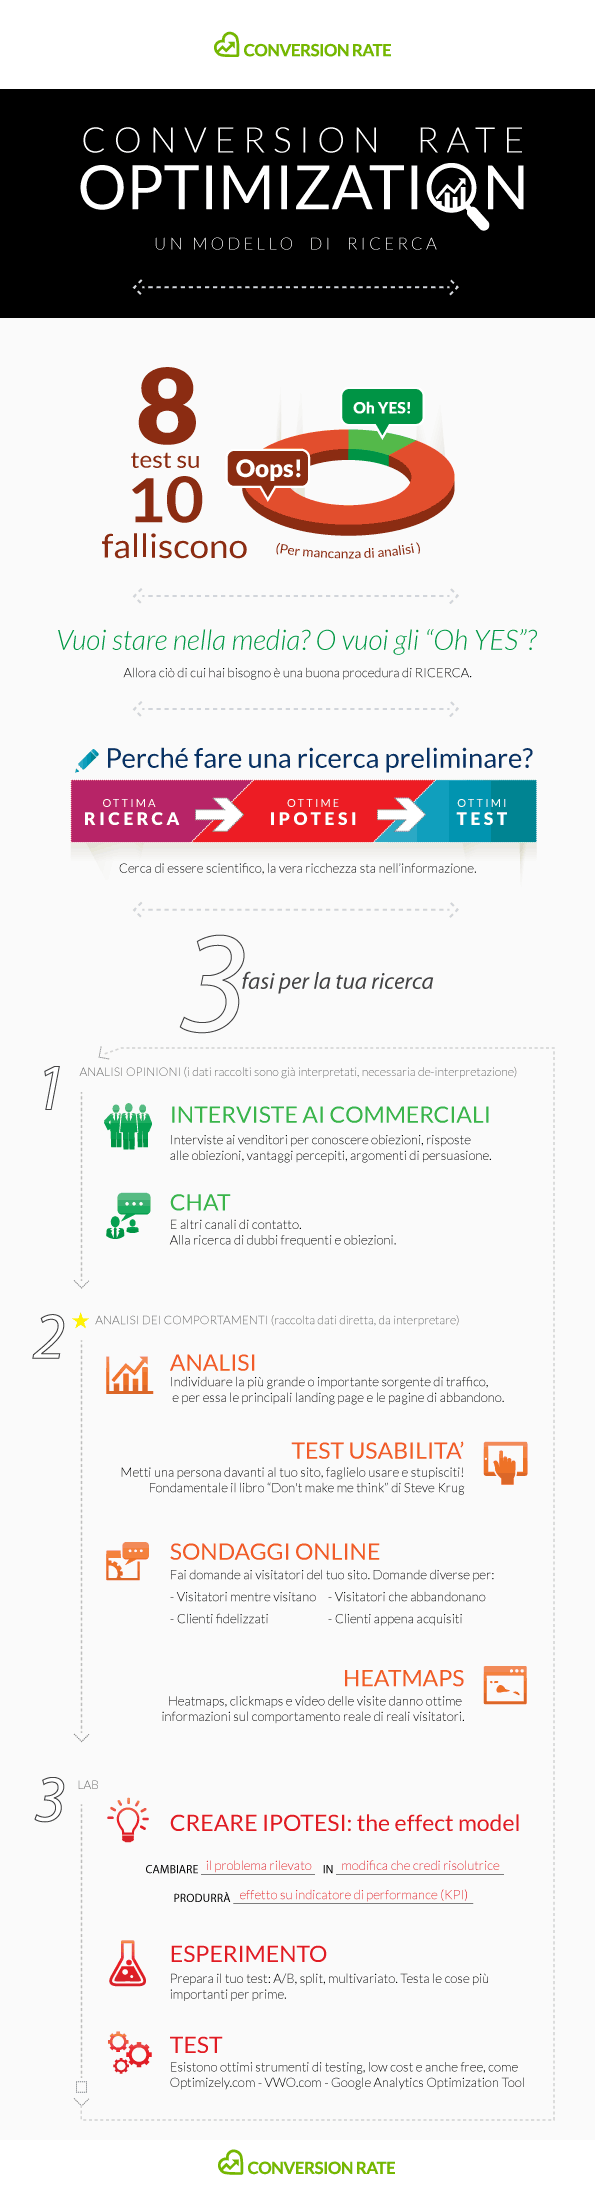 Infografica del Processo di ricerca per la Conversion Rate Optimization